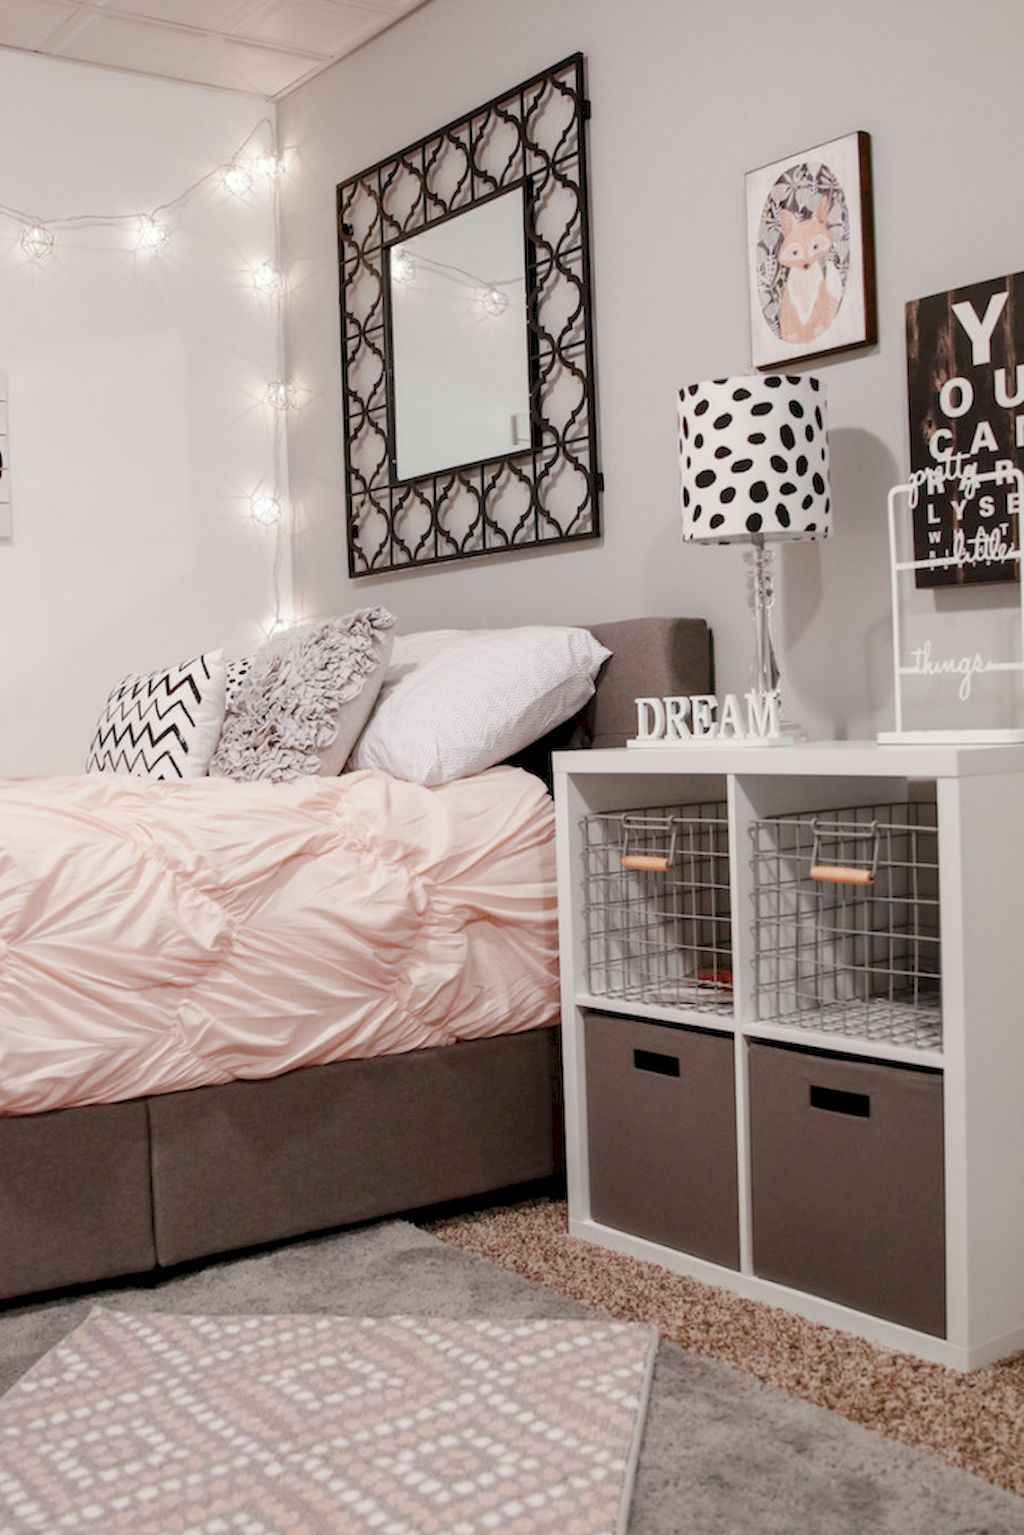 Simply bedroom decoration ideas (30)